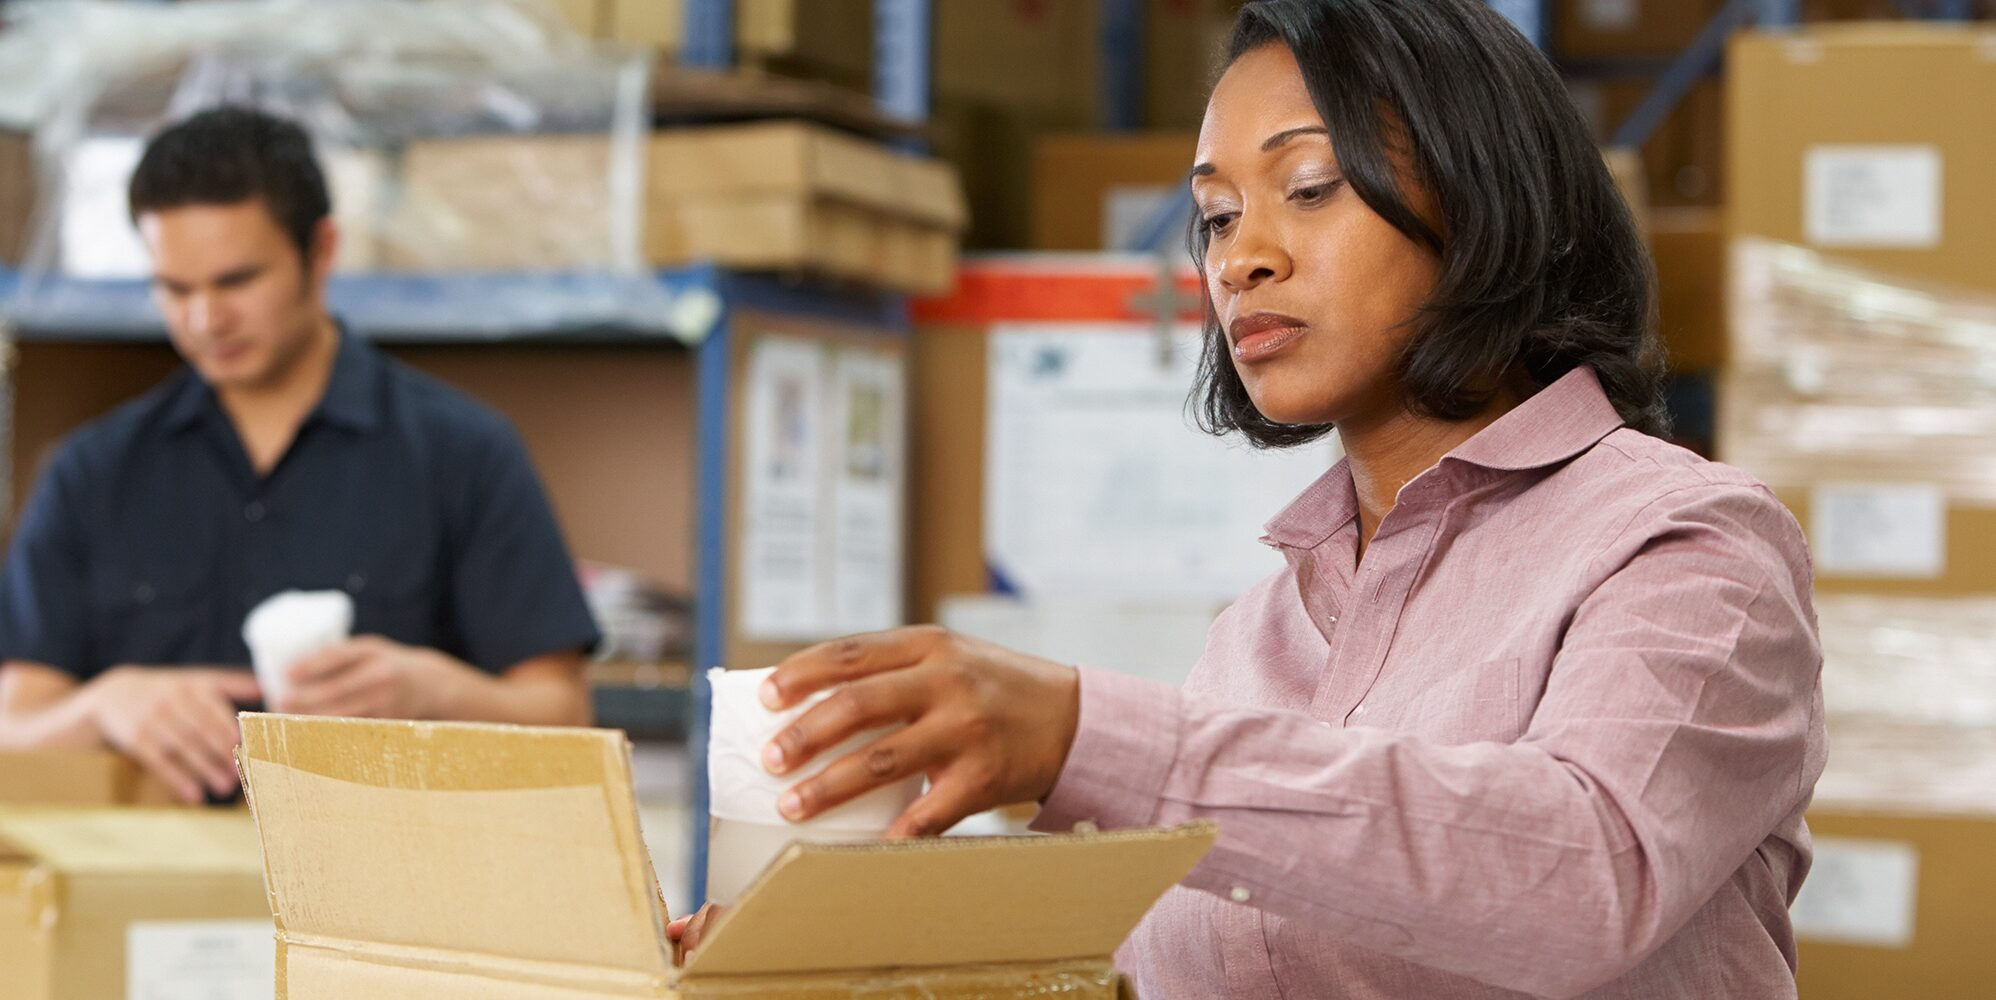 Six Key Factors To Think About When Selecting A Logistics Partner